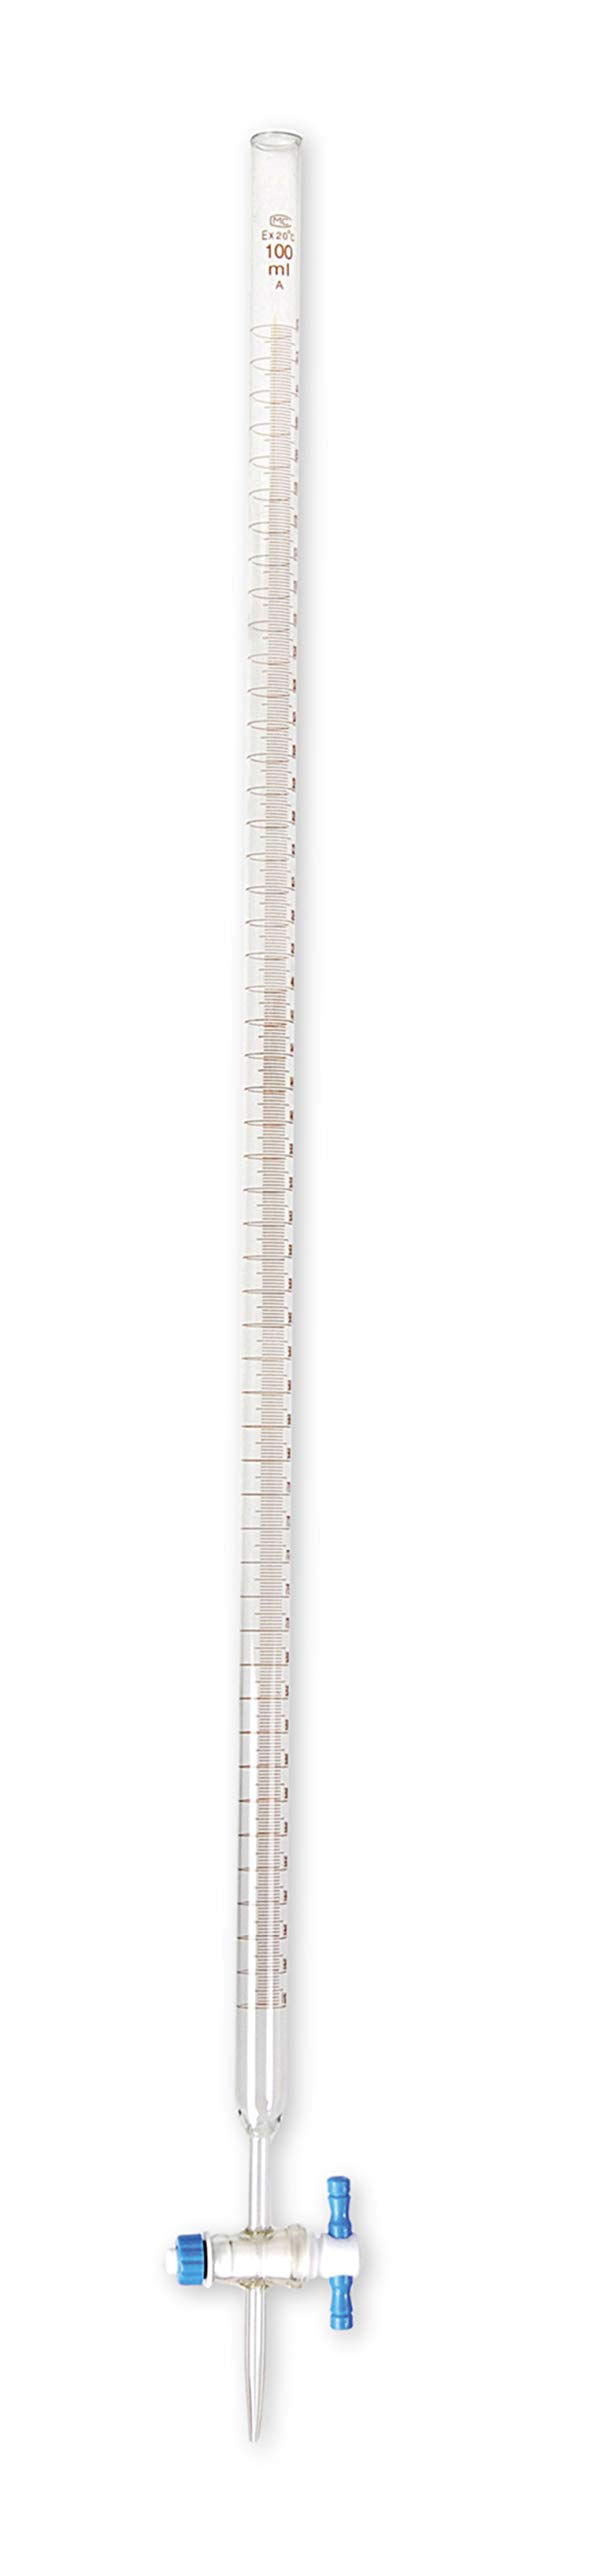 American Educational Borosilicate Glass 50mL Burette, with PTFE Stopcock by American Educational Products